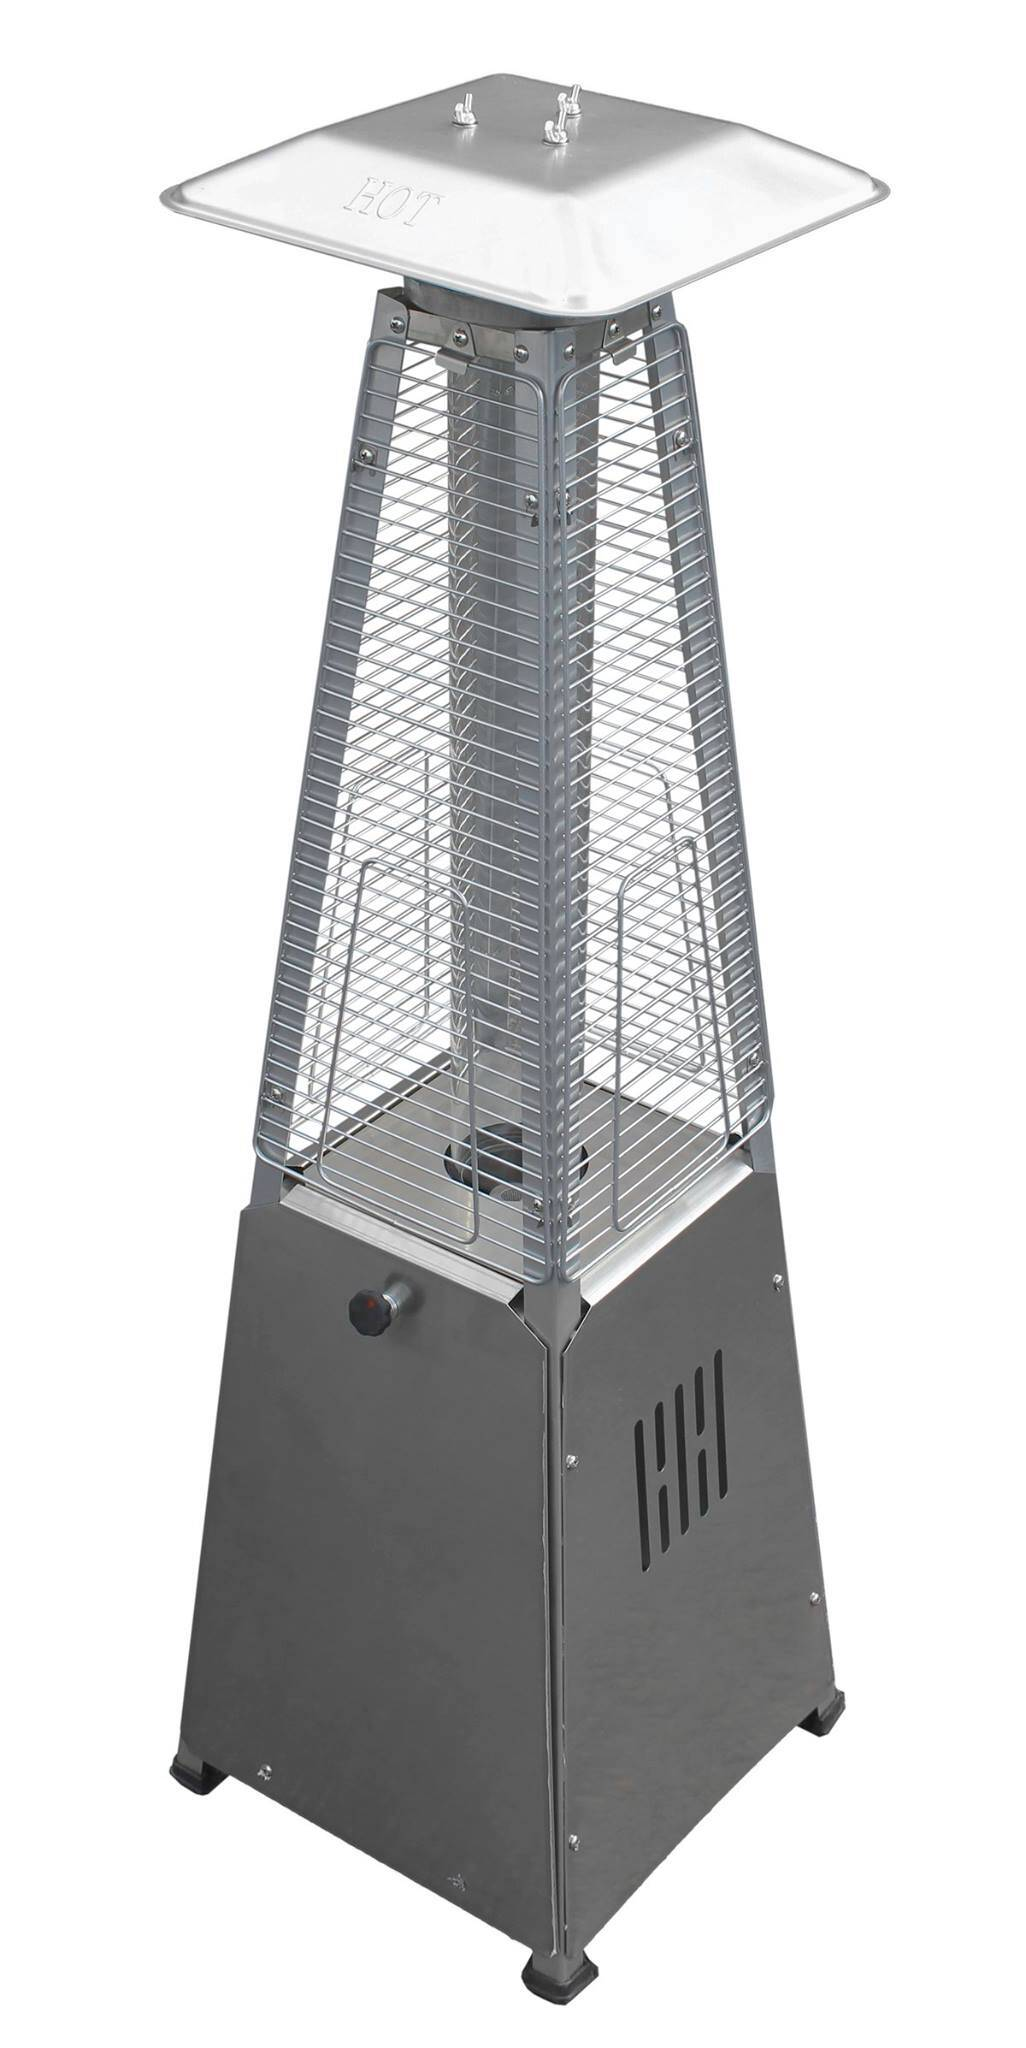 39u2033 Tall Radiant Heat Glass Tube Outdoor Patio Heater (Stainless Steel) 1